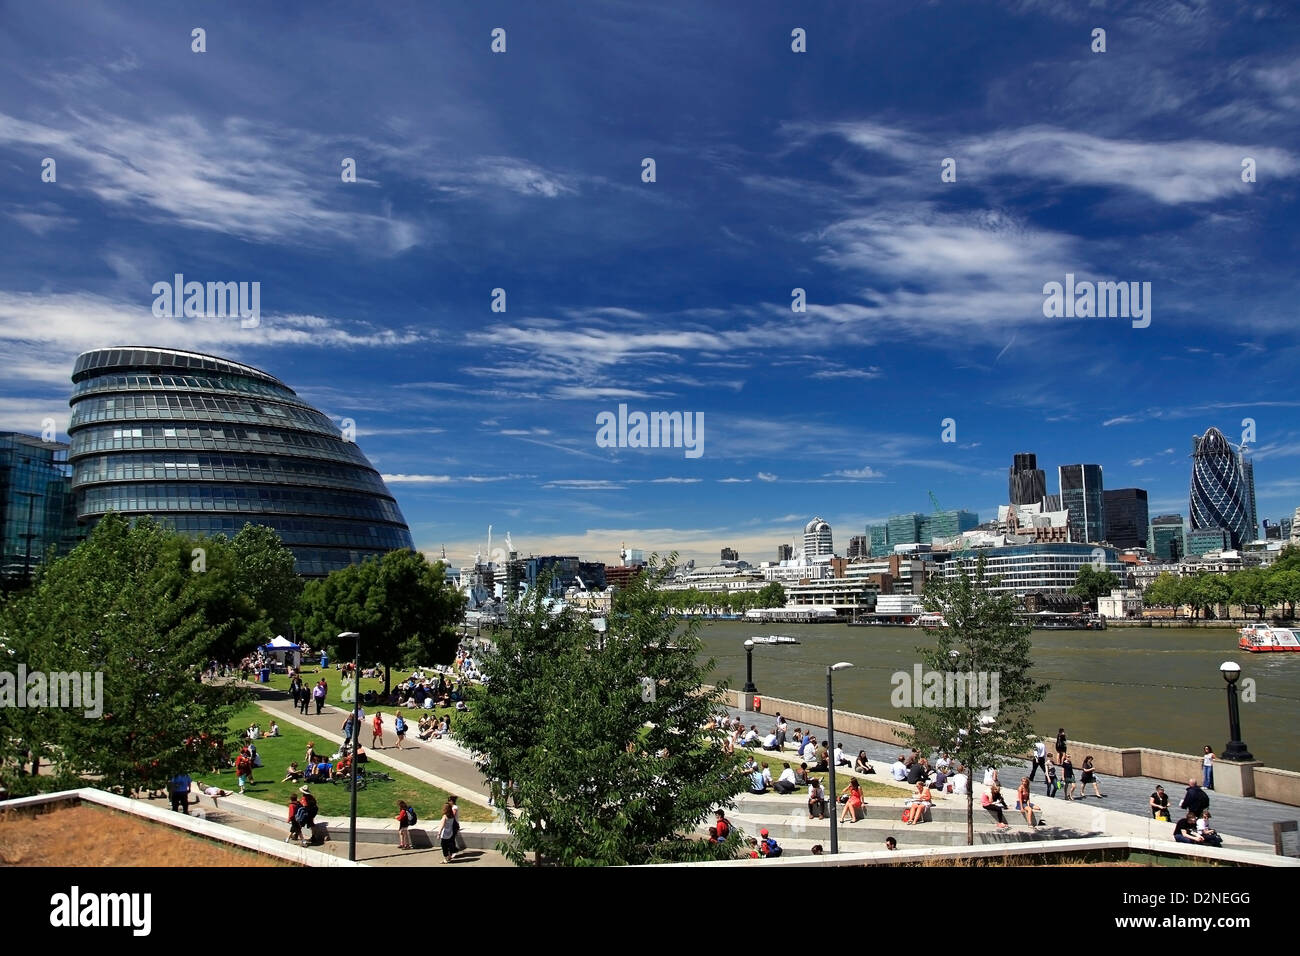 The London Assembly Building, (City Hall), South Bank, London City, England, United Kingdom - Stock Image